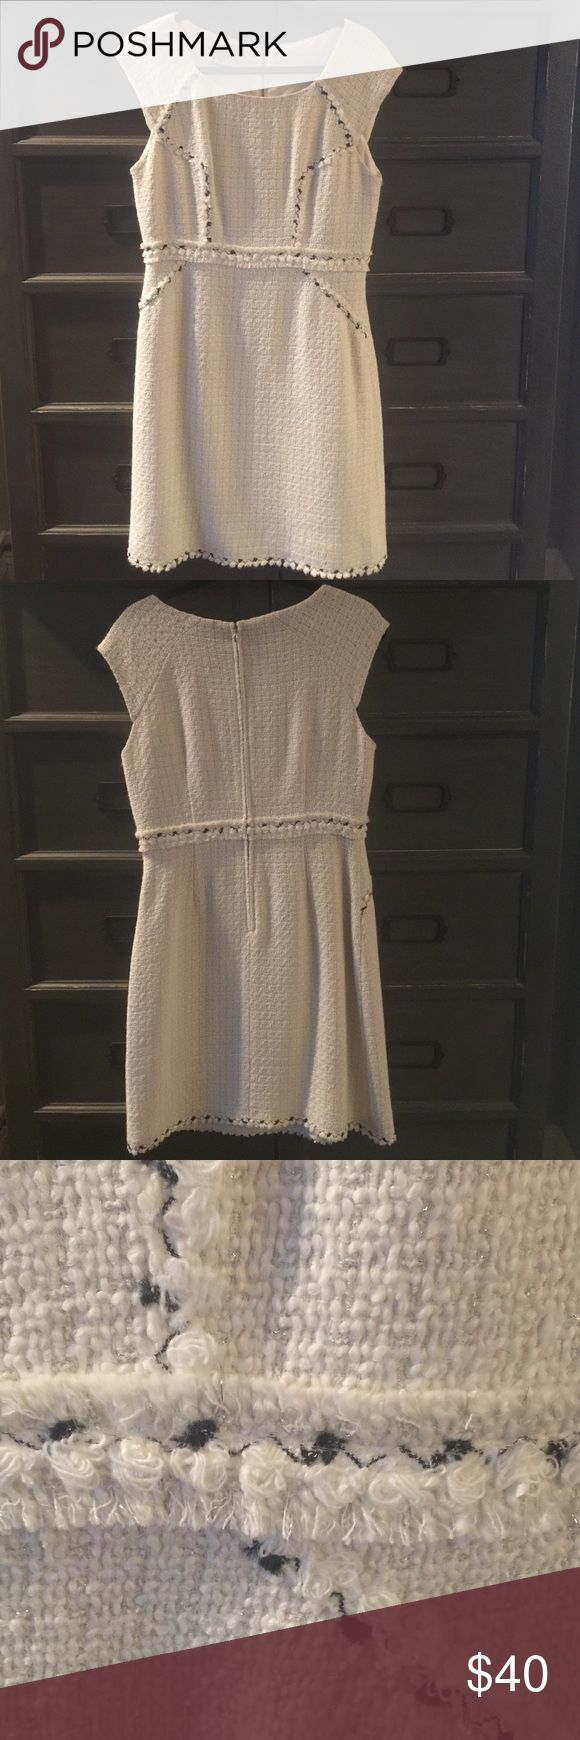 Kay Unger NWOT size 10 white boucle dress Kay Unger NWOT size 10 creamy white boucle sheath dress with black accents. Never worn, but tags have been removed and I no longer have them. Kay Unger Dresses